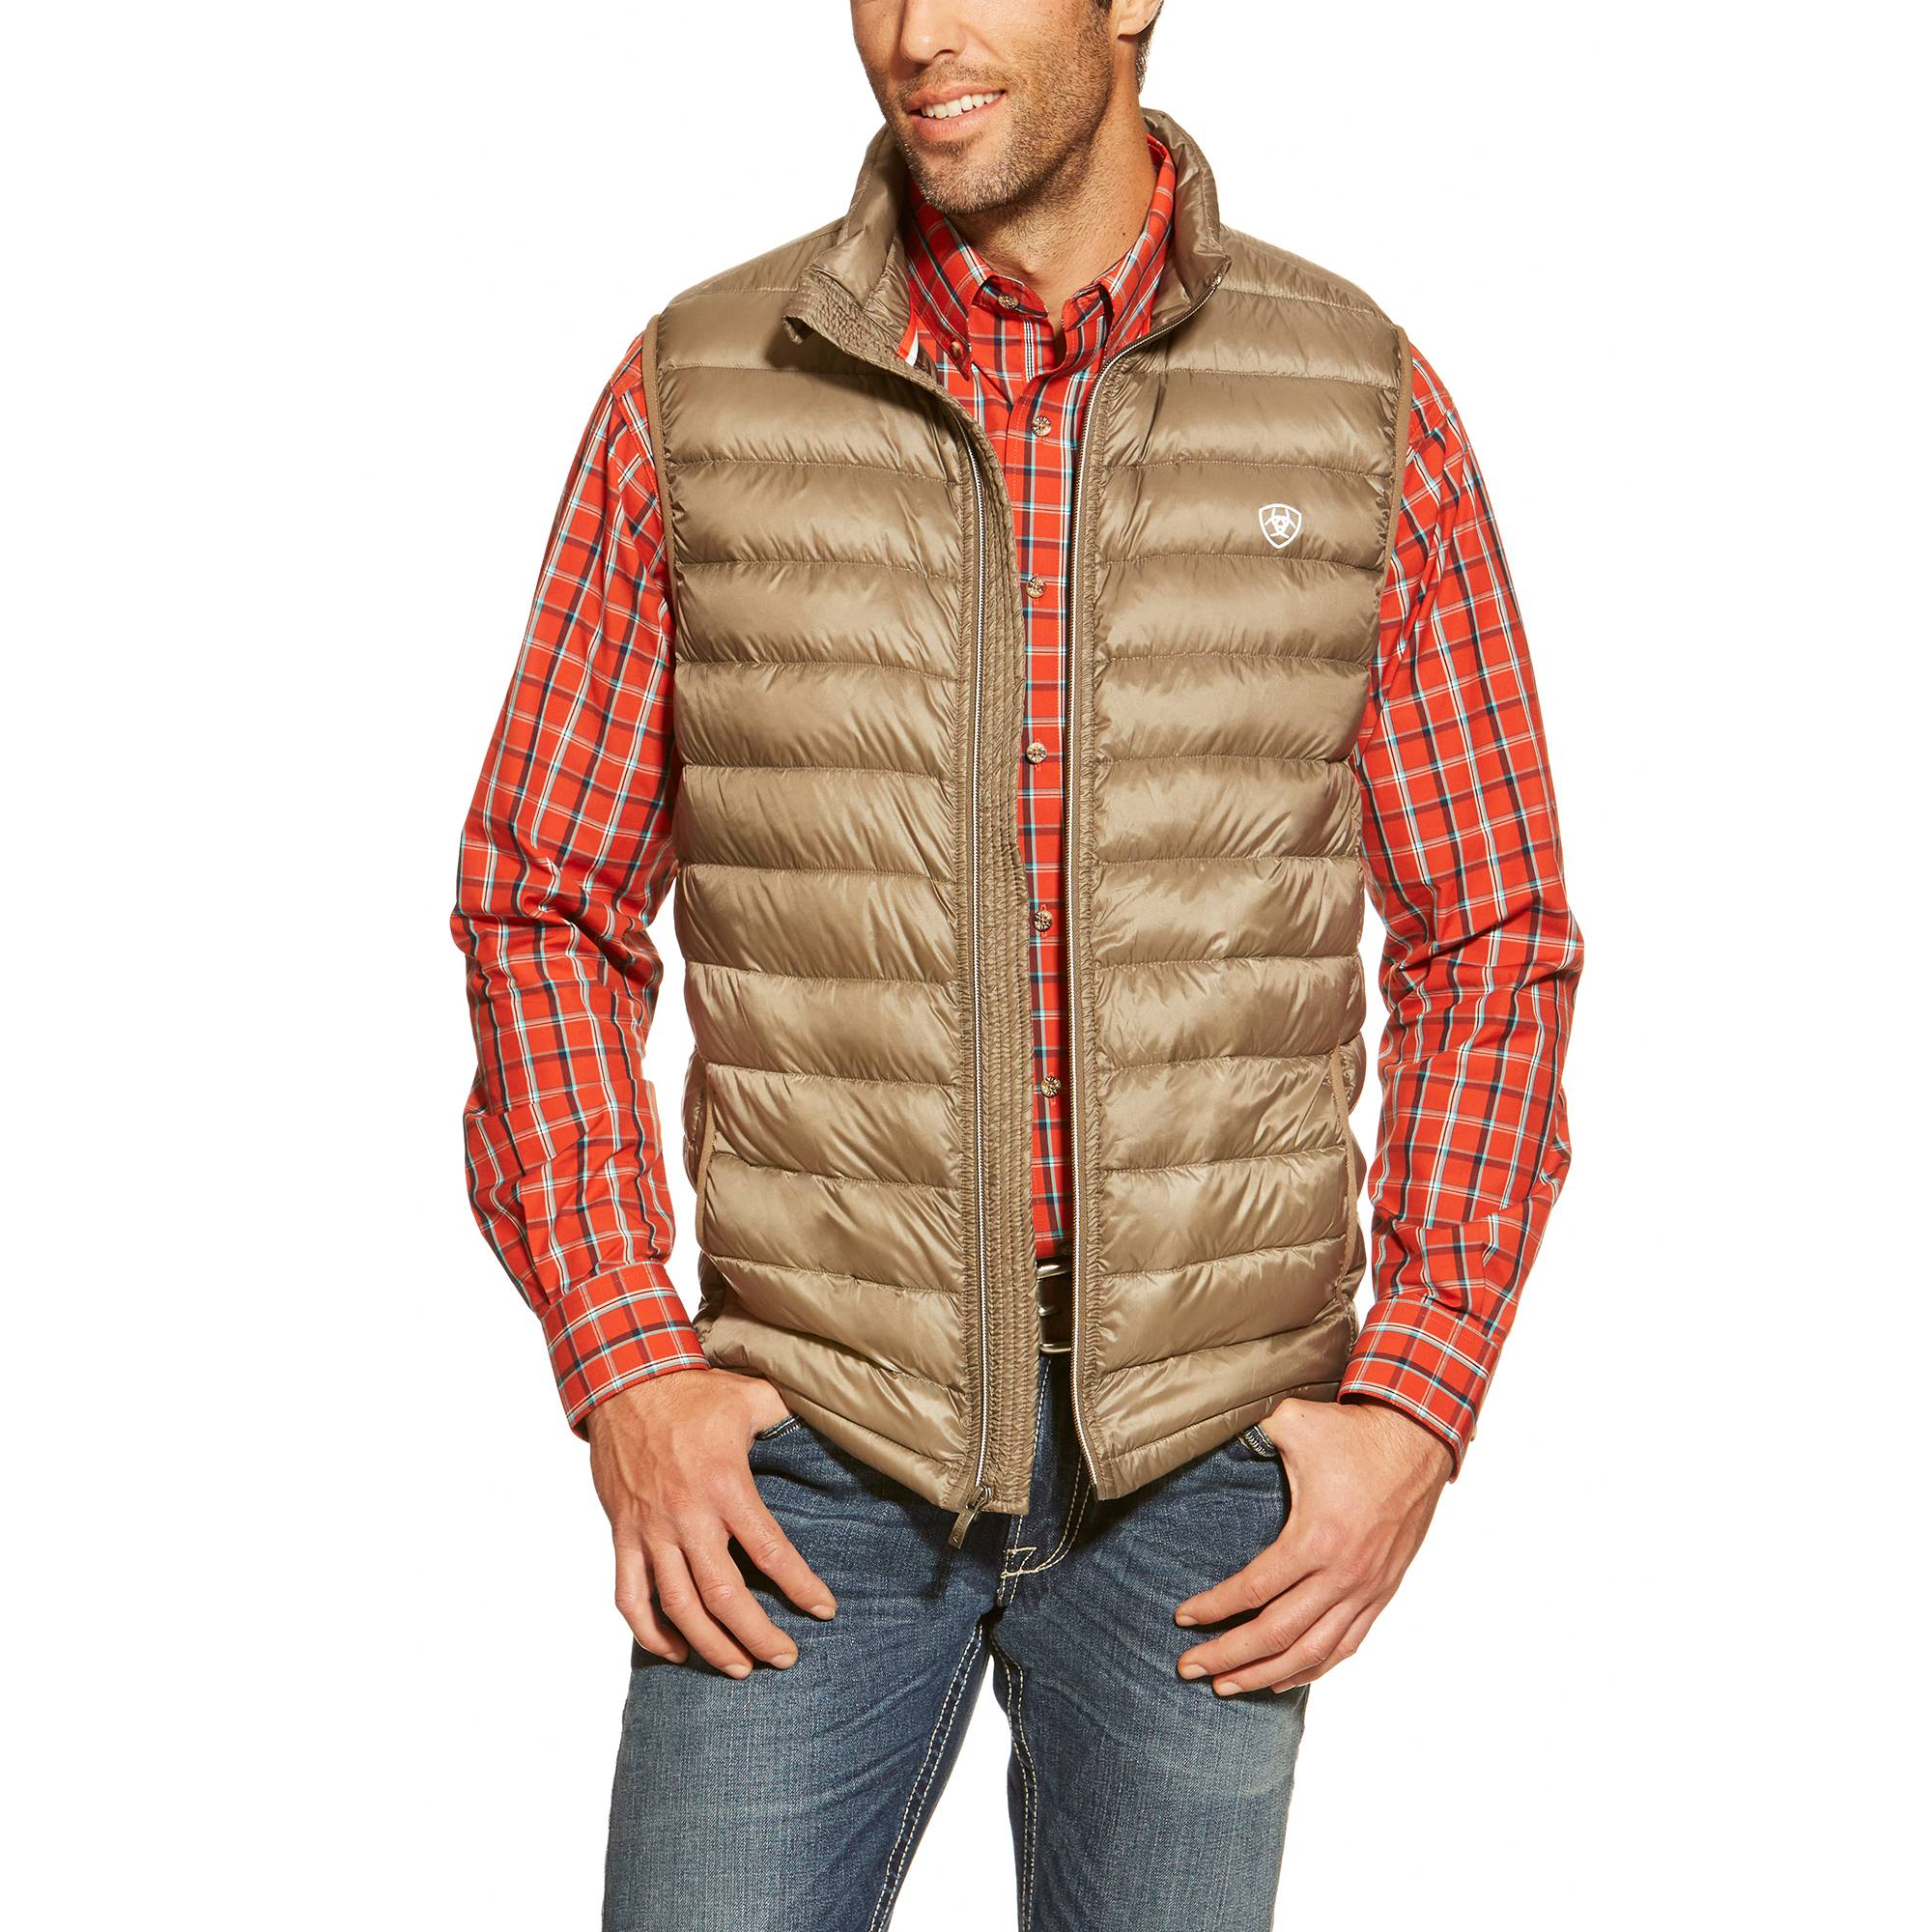 Ariat Men's Ideal Down Vest - Morel